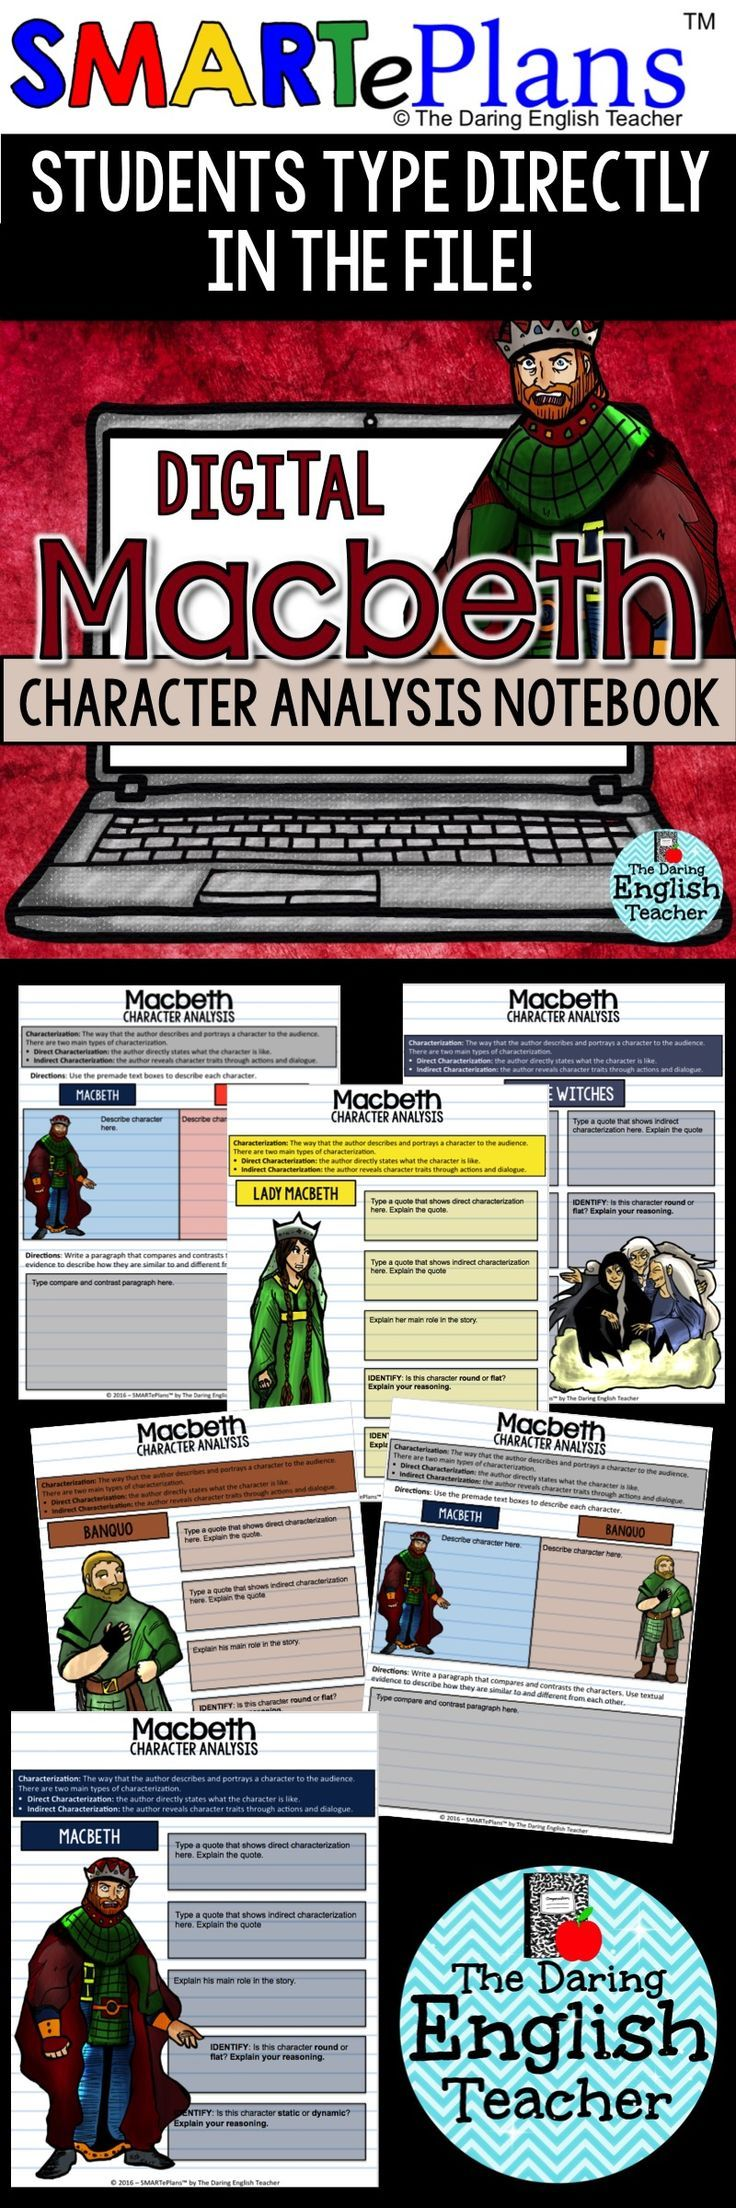 macbeth themes symbols apparitions sketchnotes guided notes digital macbeth character analysis notebook for google drive analyze each main character in william shakepeare s